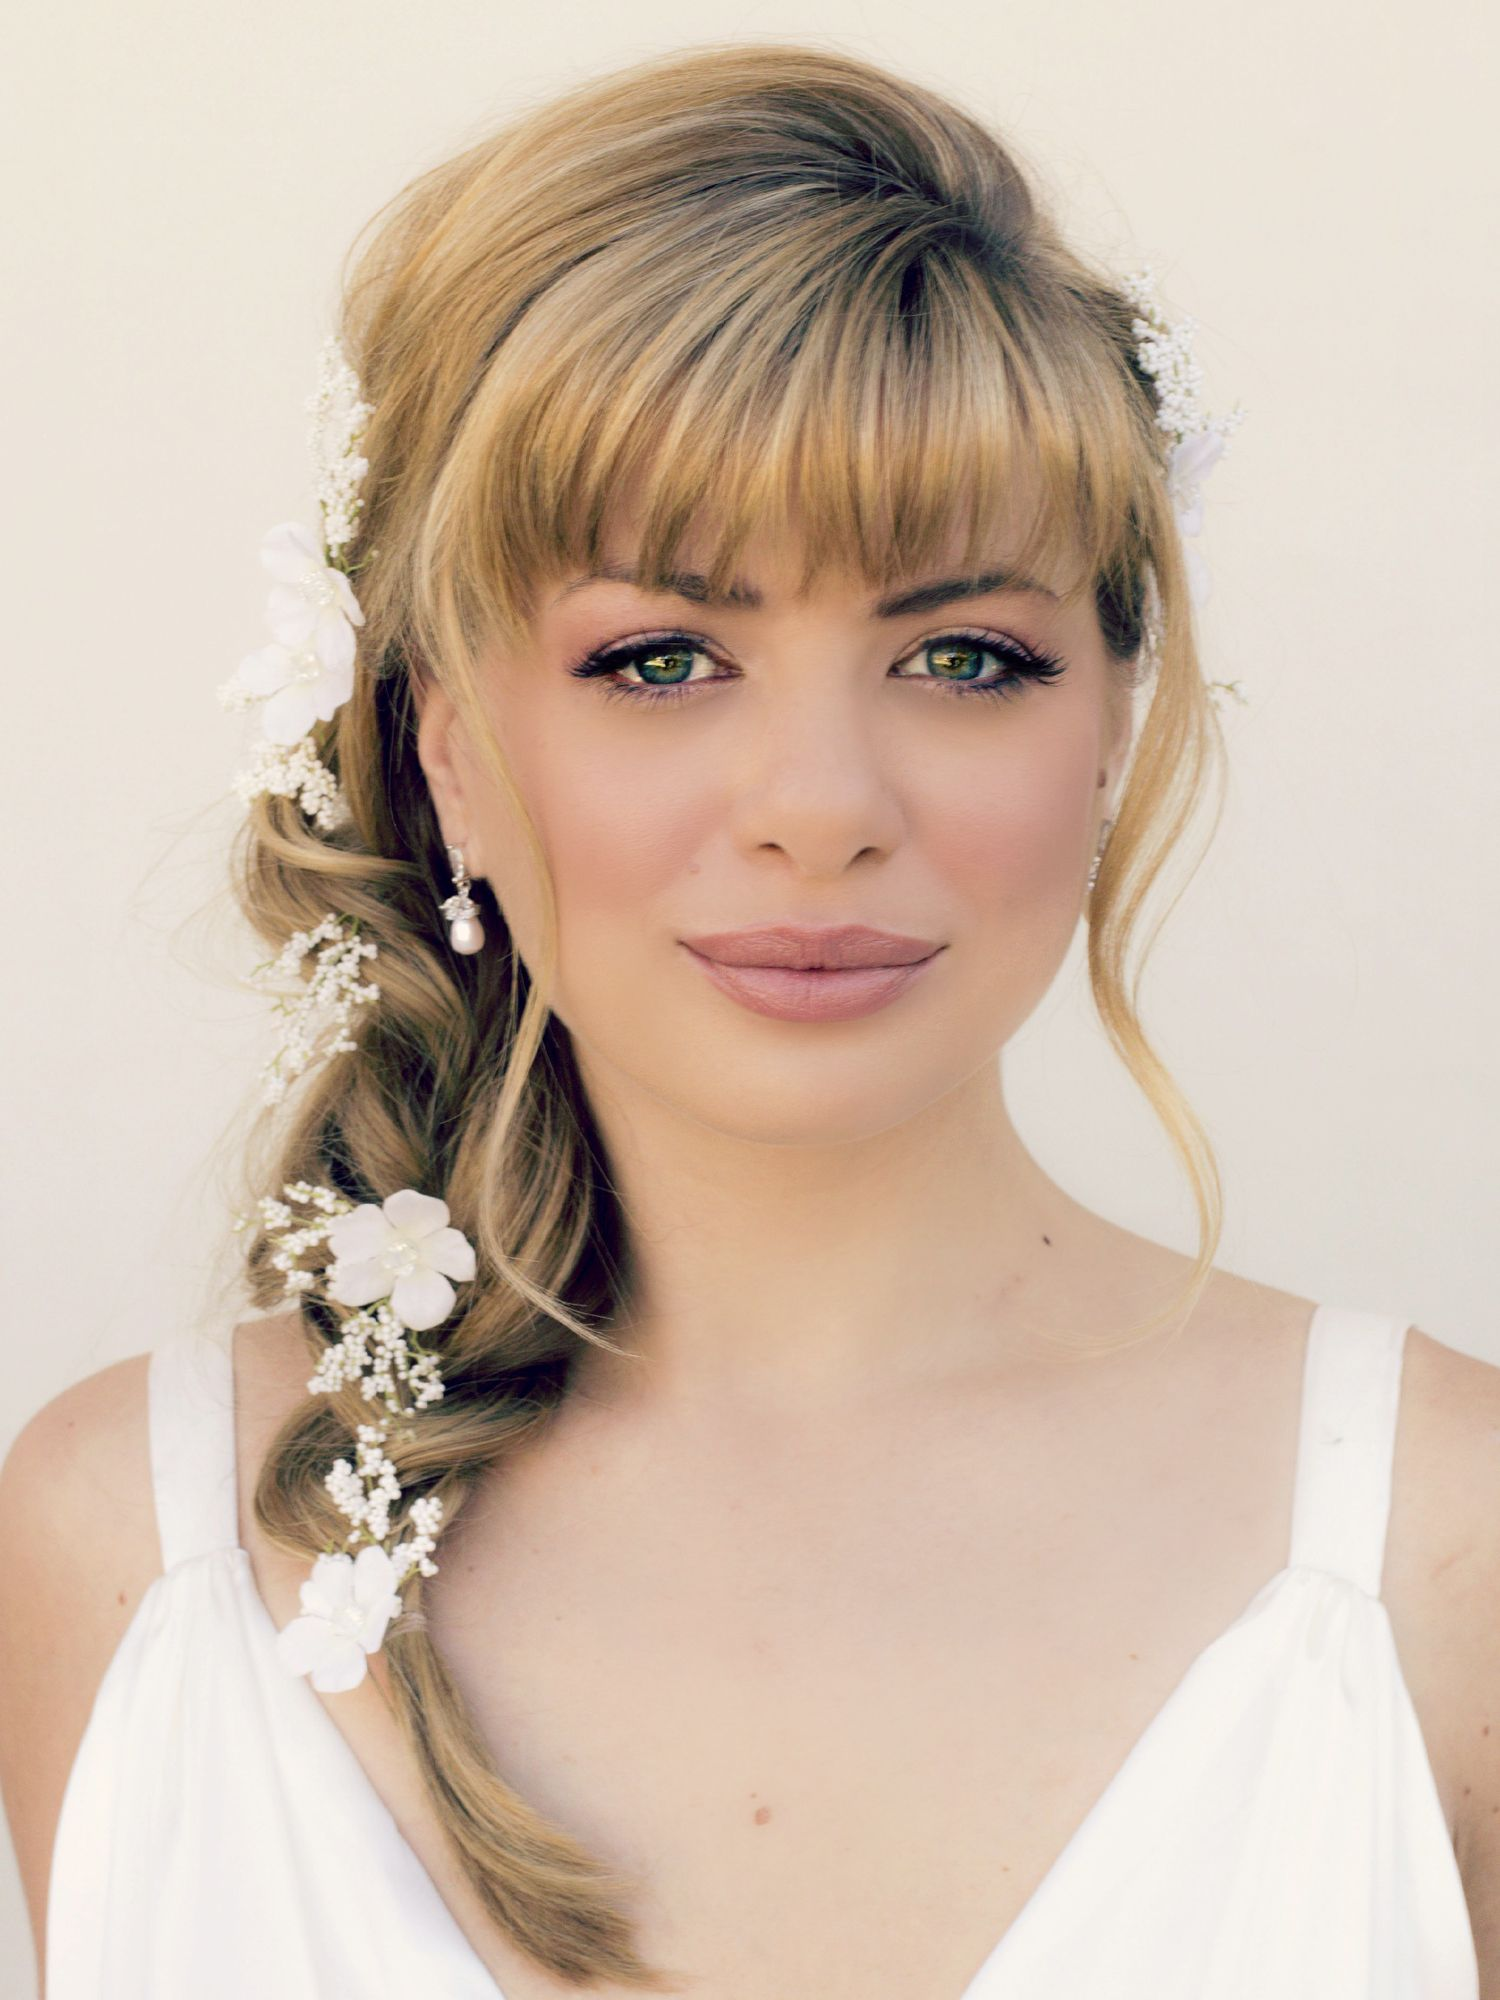 20 hairstyles with bangs to inspire you for fall 2015 | bangs